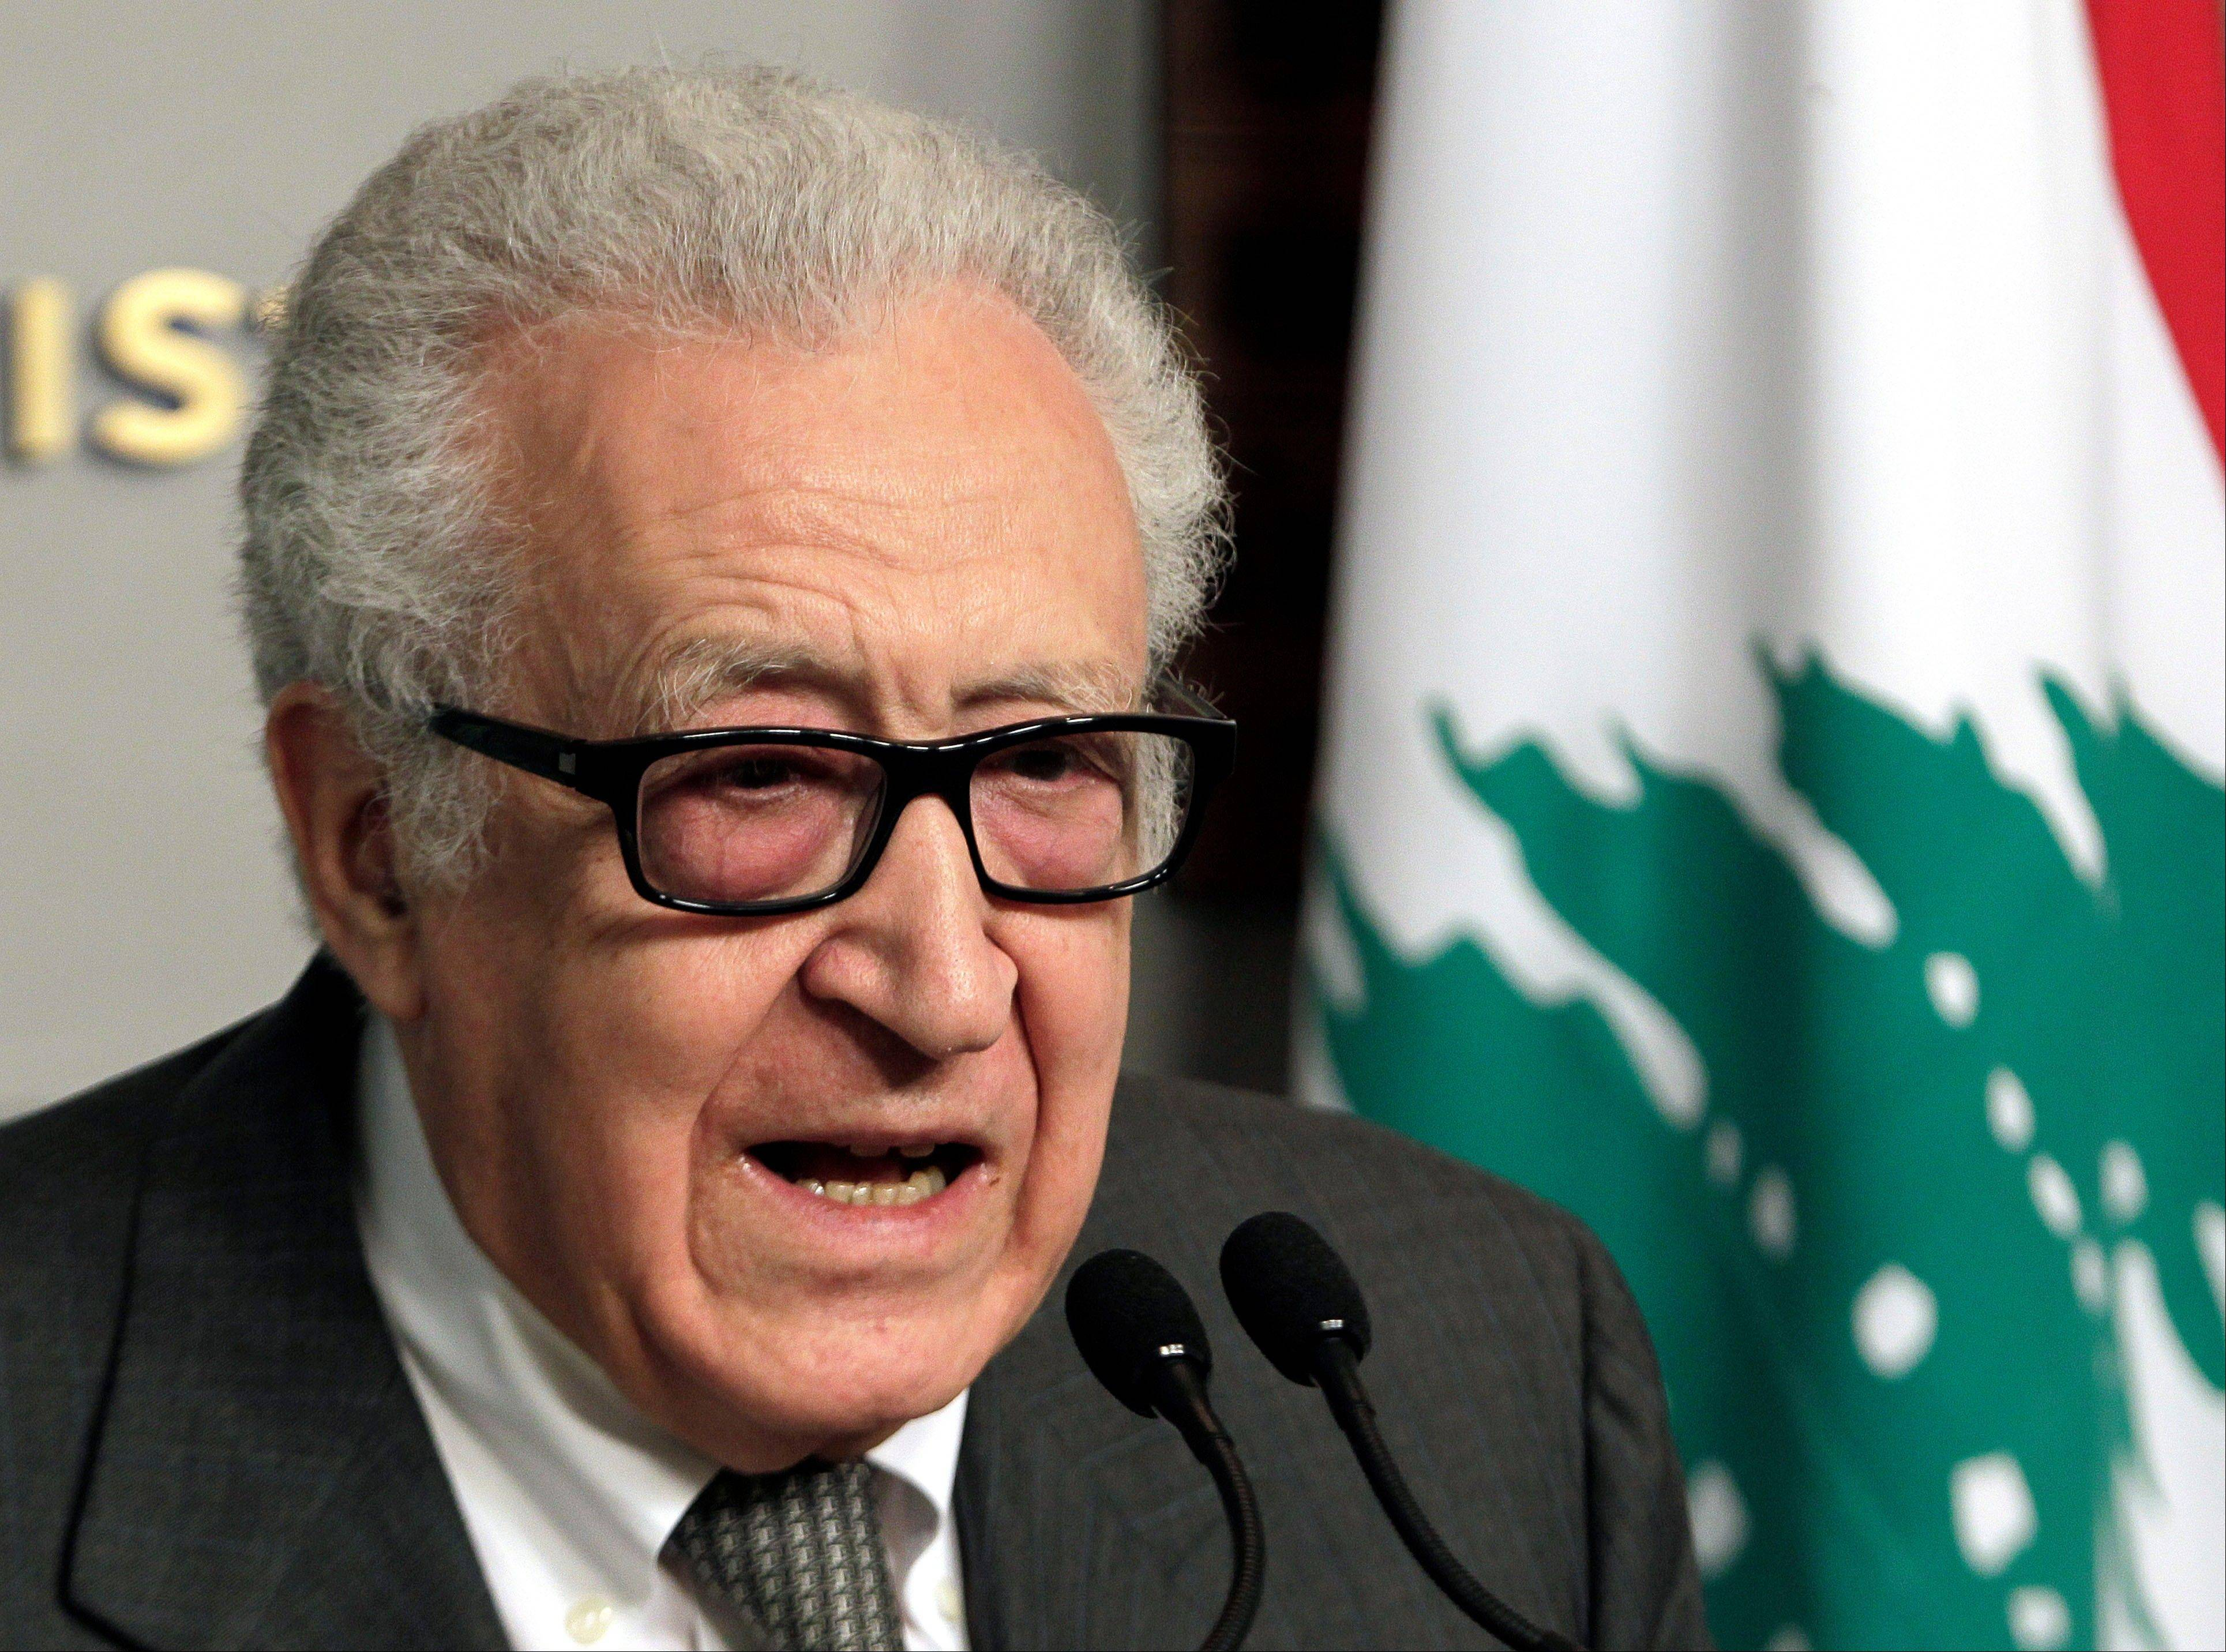 U.N.-Arab League envoy for Syria, Lakhdar Brahimi, speaks during a press conference after his meeting with Lebanese Prime Minister Najib Mikati, at the government house, in Beirut, Lebanon, Friday, Nov. 1, 2013. Brahimi warned on Friday in Damascus that there can be no peace talks without the opposition while making yet another plea for both sides in the civil war to come to the negotiating table in Geneva later this month.